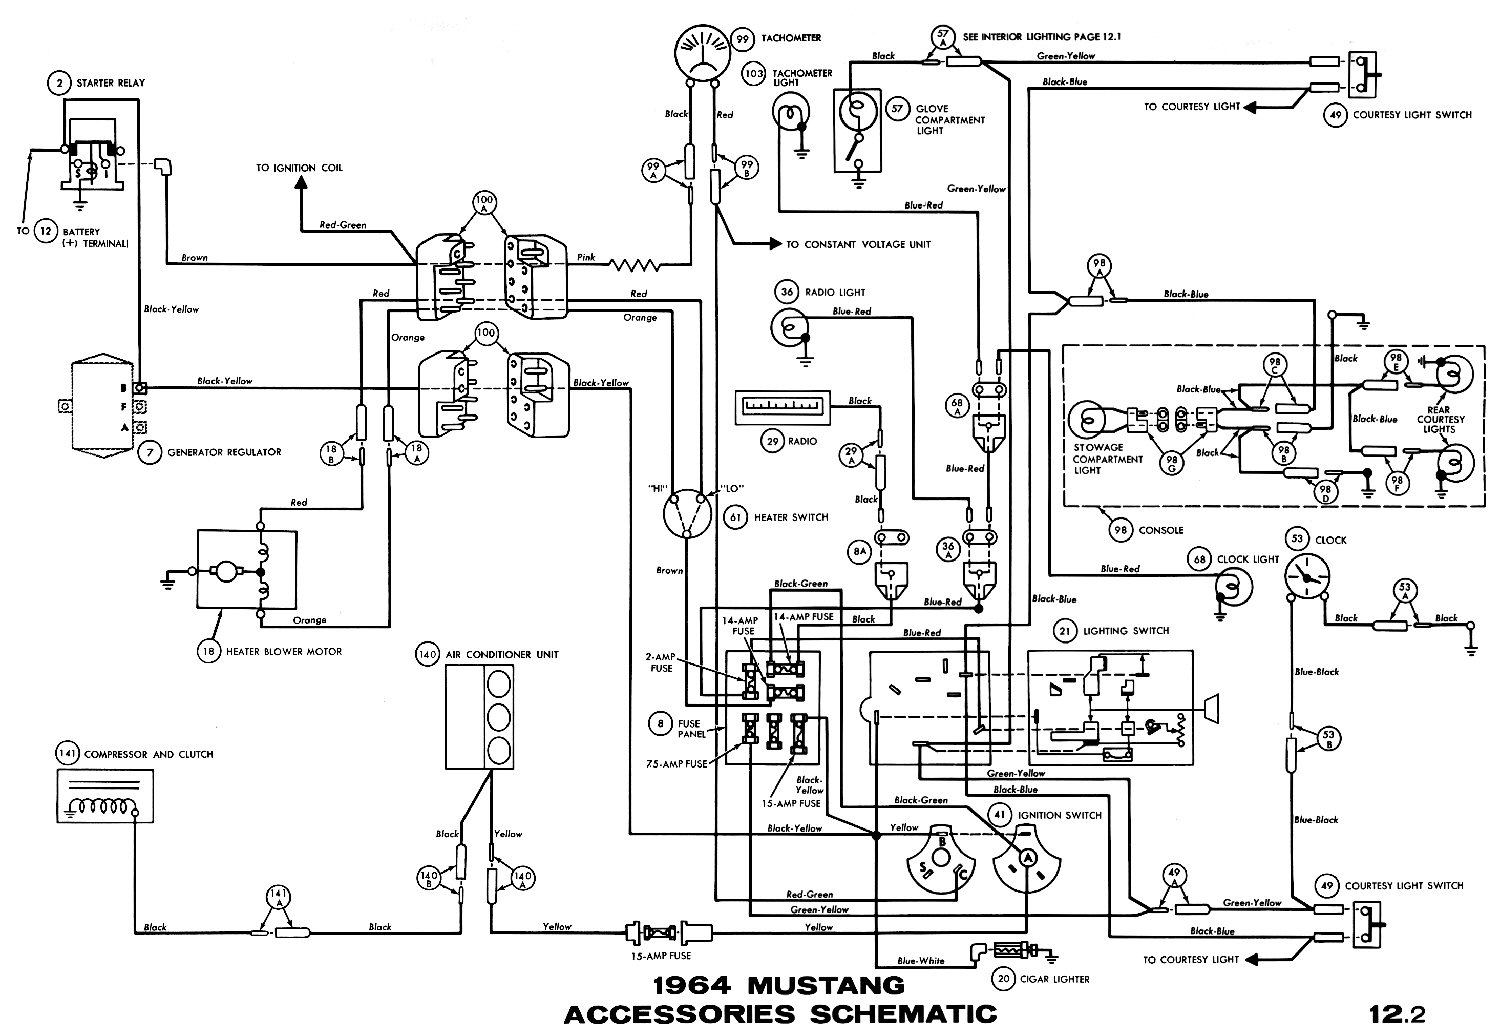 650185 Spade Ignition Switch Radio on vactor wiring diagrams